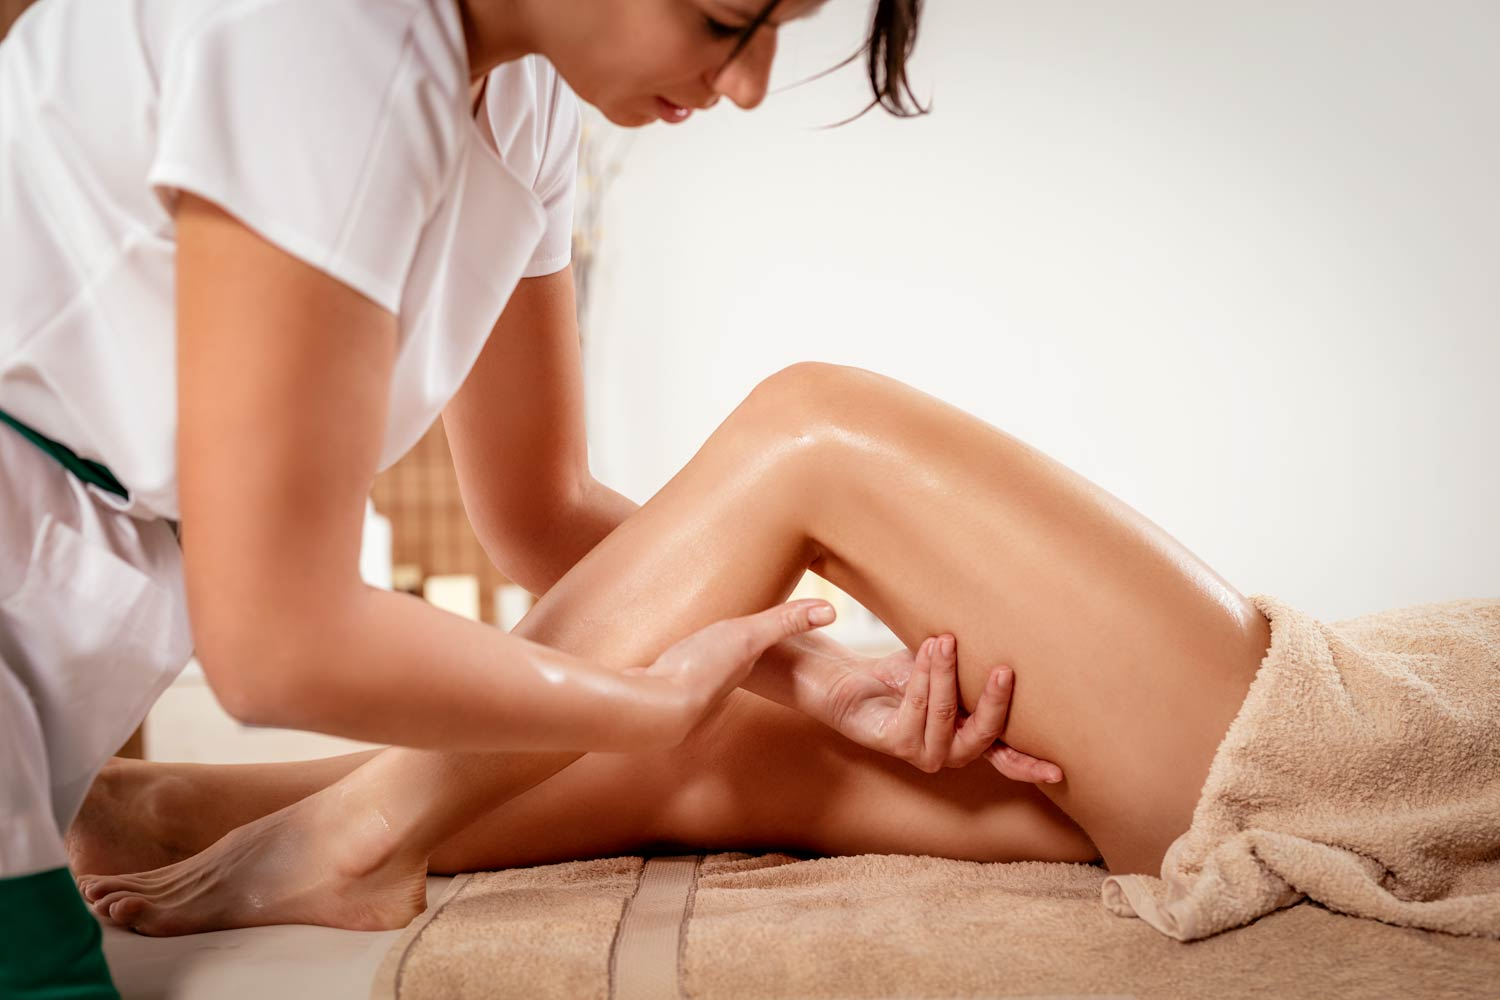 Lymphatic drainage massage being performed by a female massage therapist